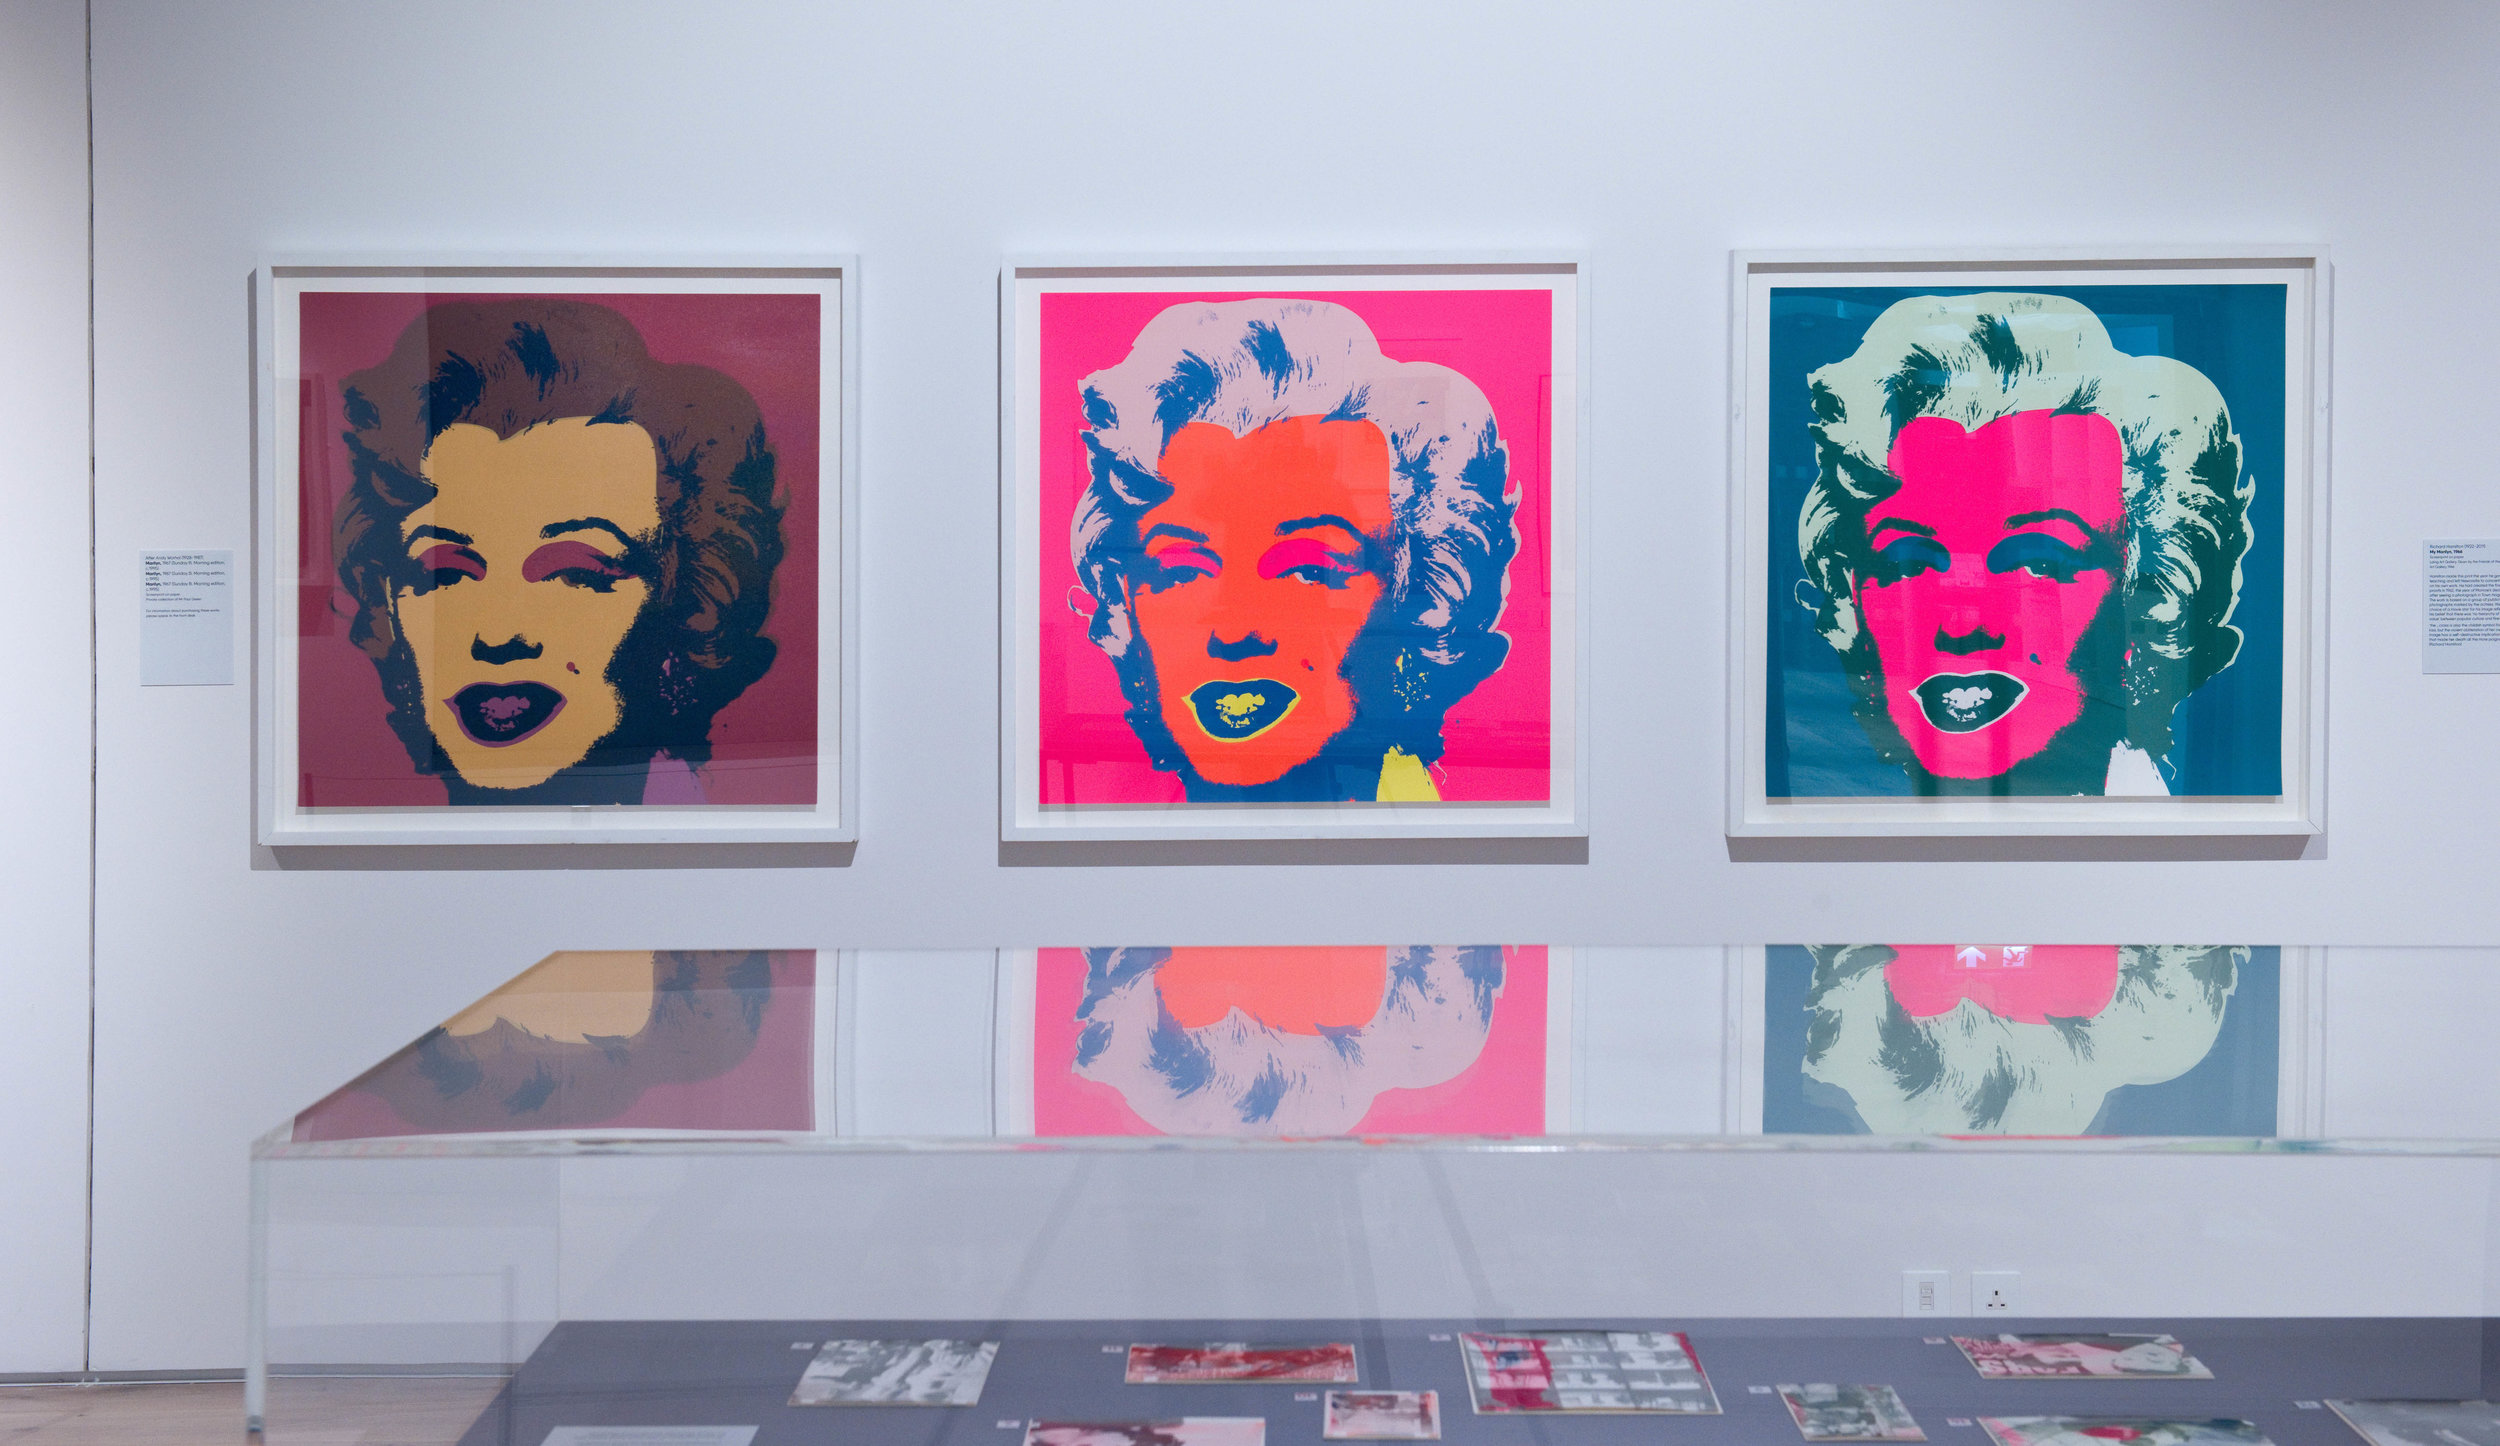 Andy Warhol, Marilyn (Sunday B editions). Pioneers of Pop. Hatton Gallery, Newcastle University. 7 October 2017 - 20 January 2018. Installation view. © Hatton Gallery. Photo: Colin Davison.